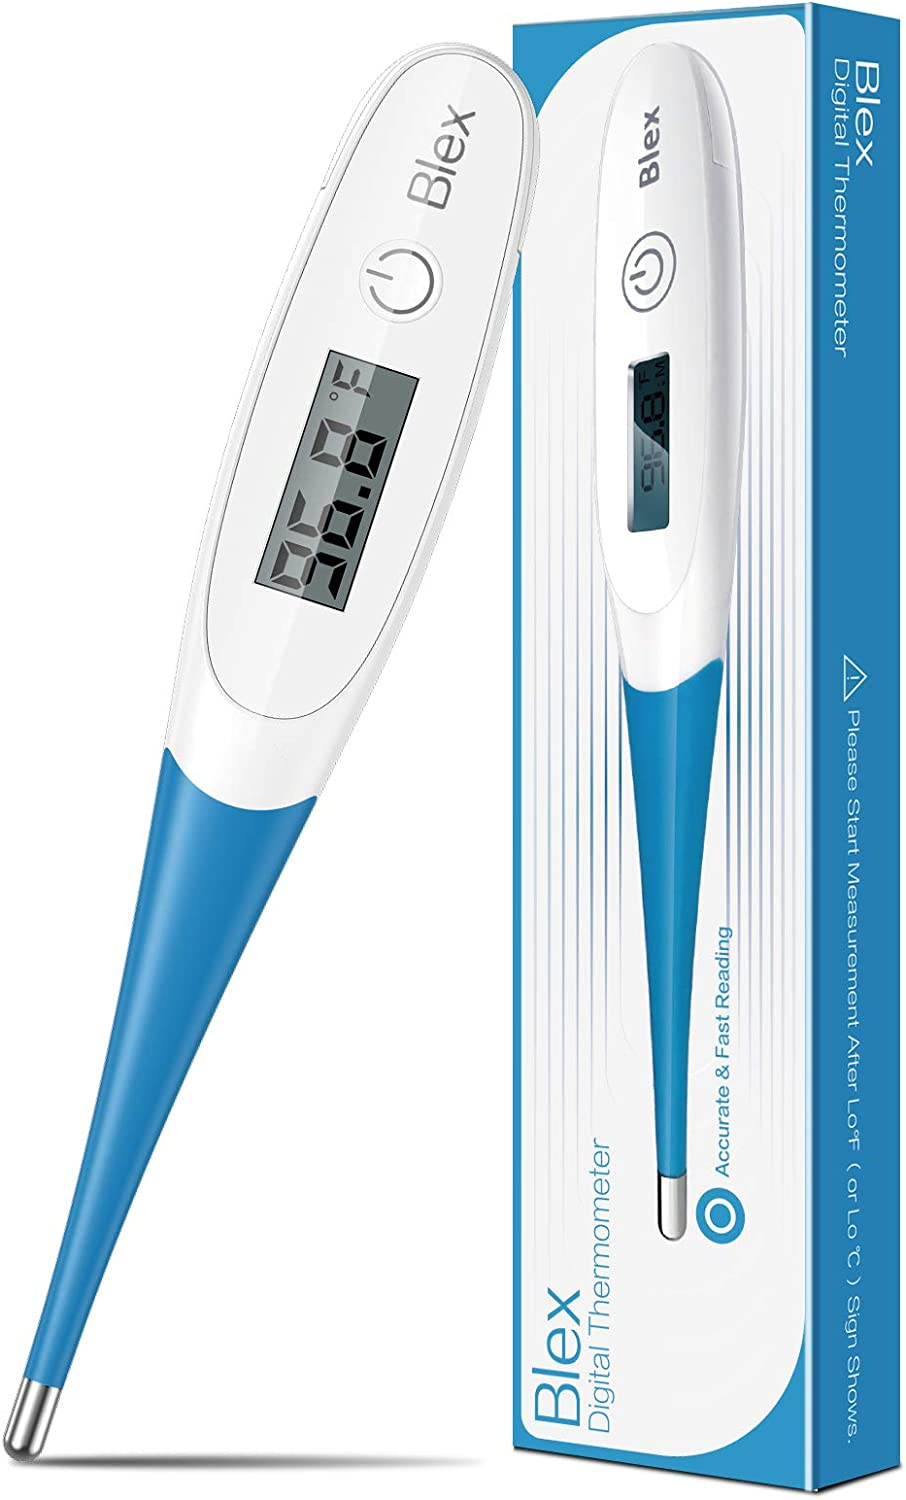 Blex Thermometer for Adults, Oral Digital Thermometer for Fever and Baby, Blue : Health & Household